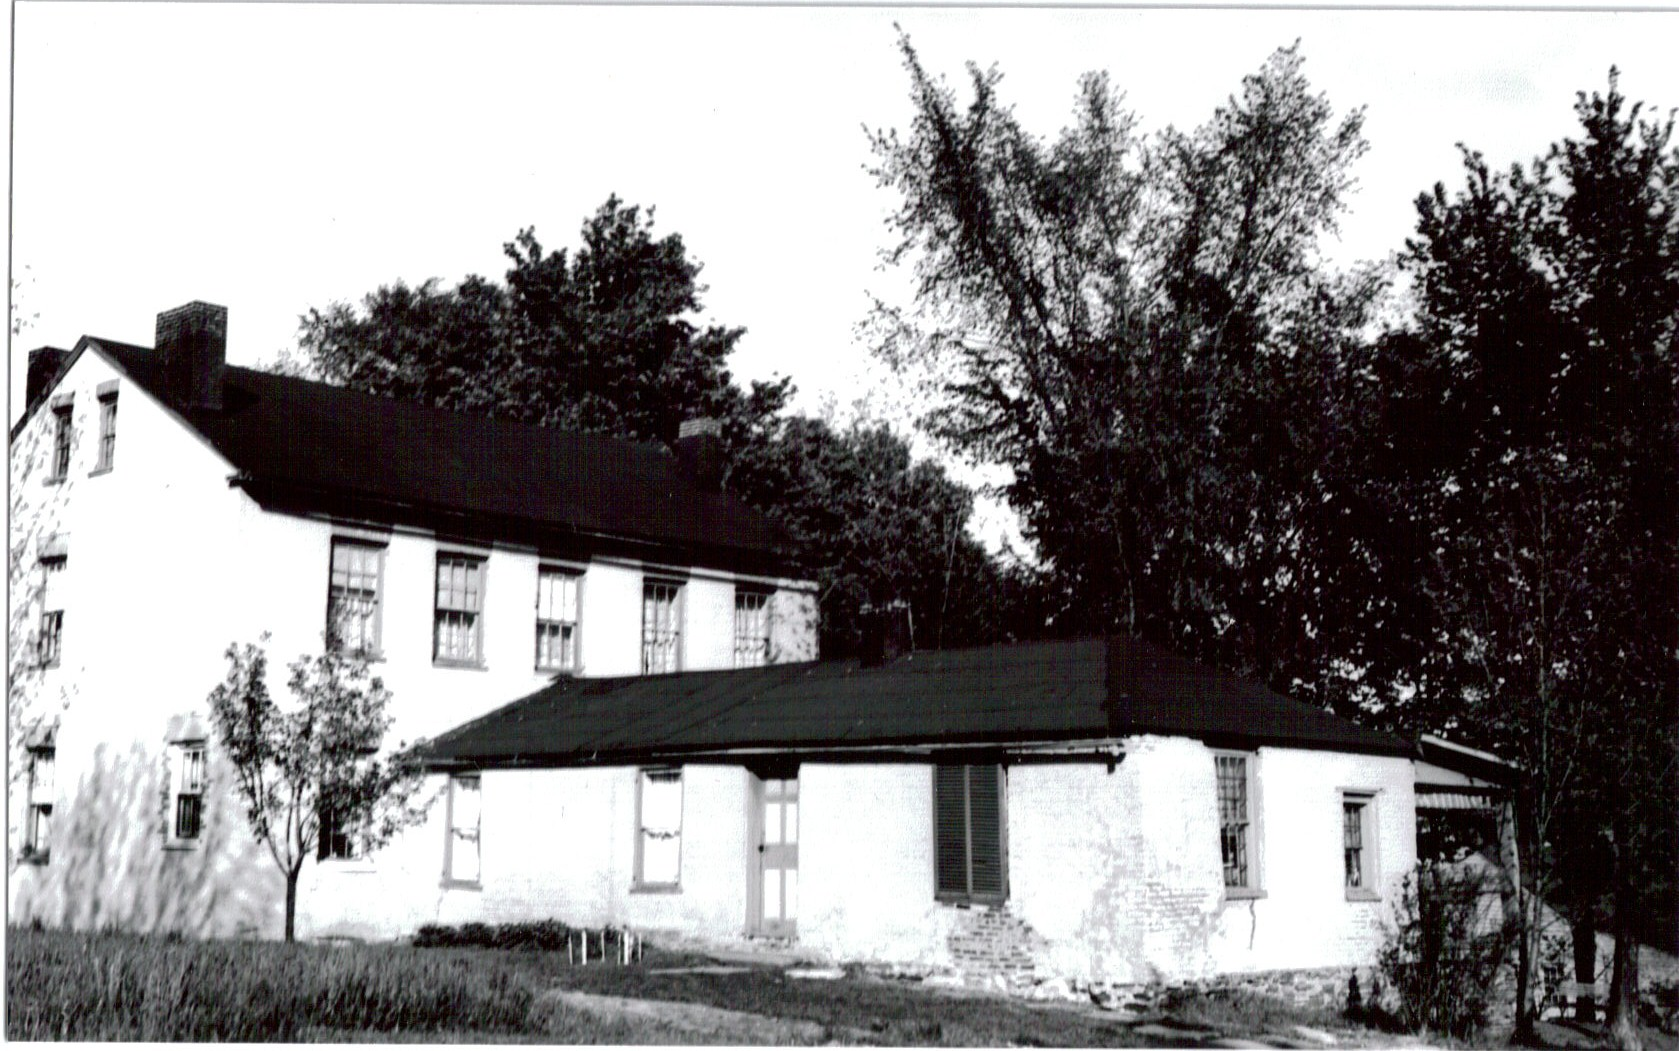 James Manning House, Old House Black and White